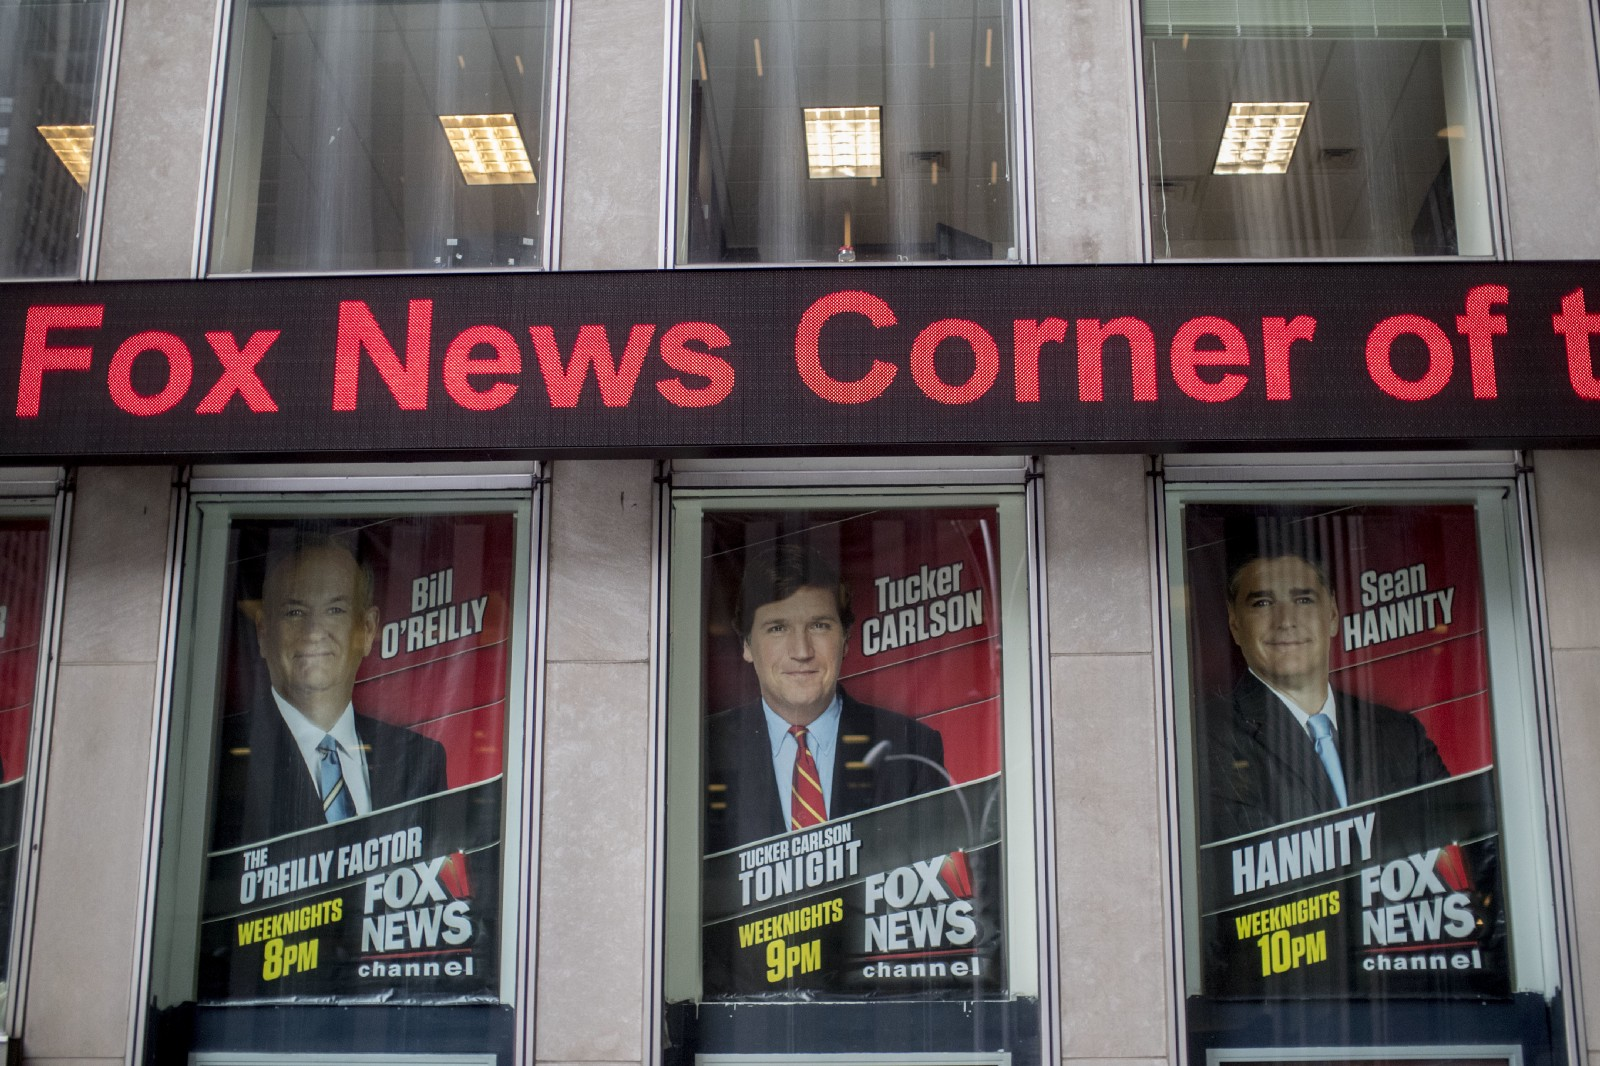 Fox News Faces Probe From NY Human Rights Division, Attorney Says